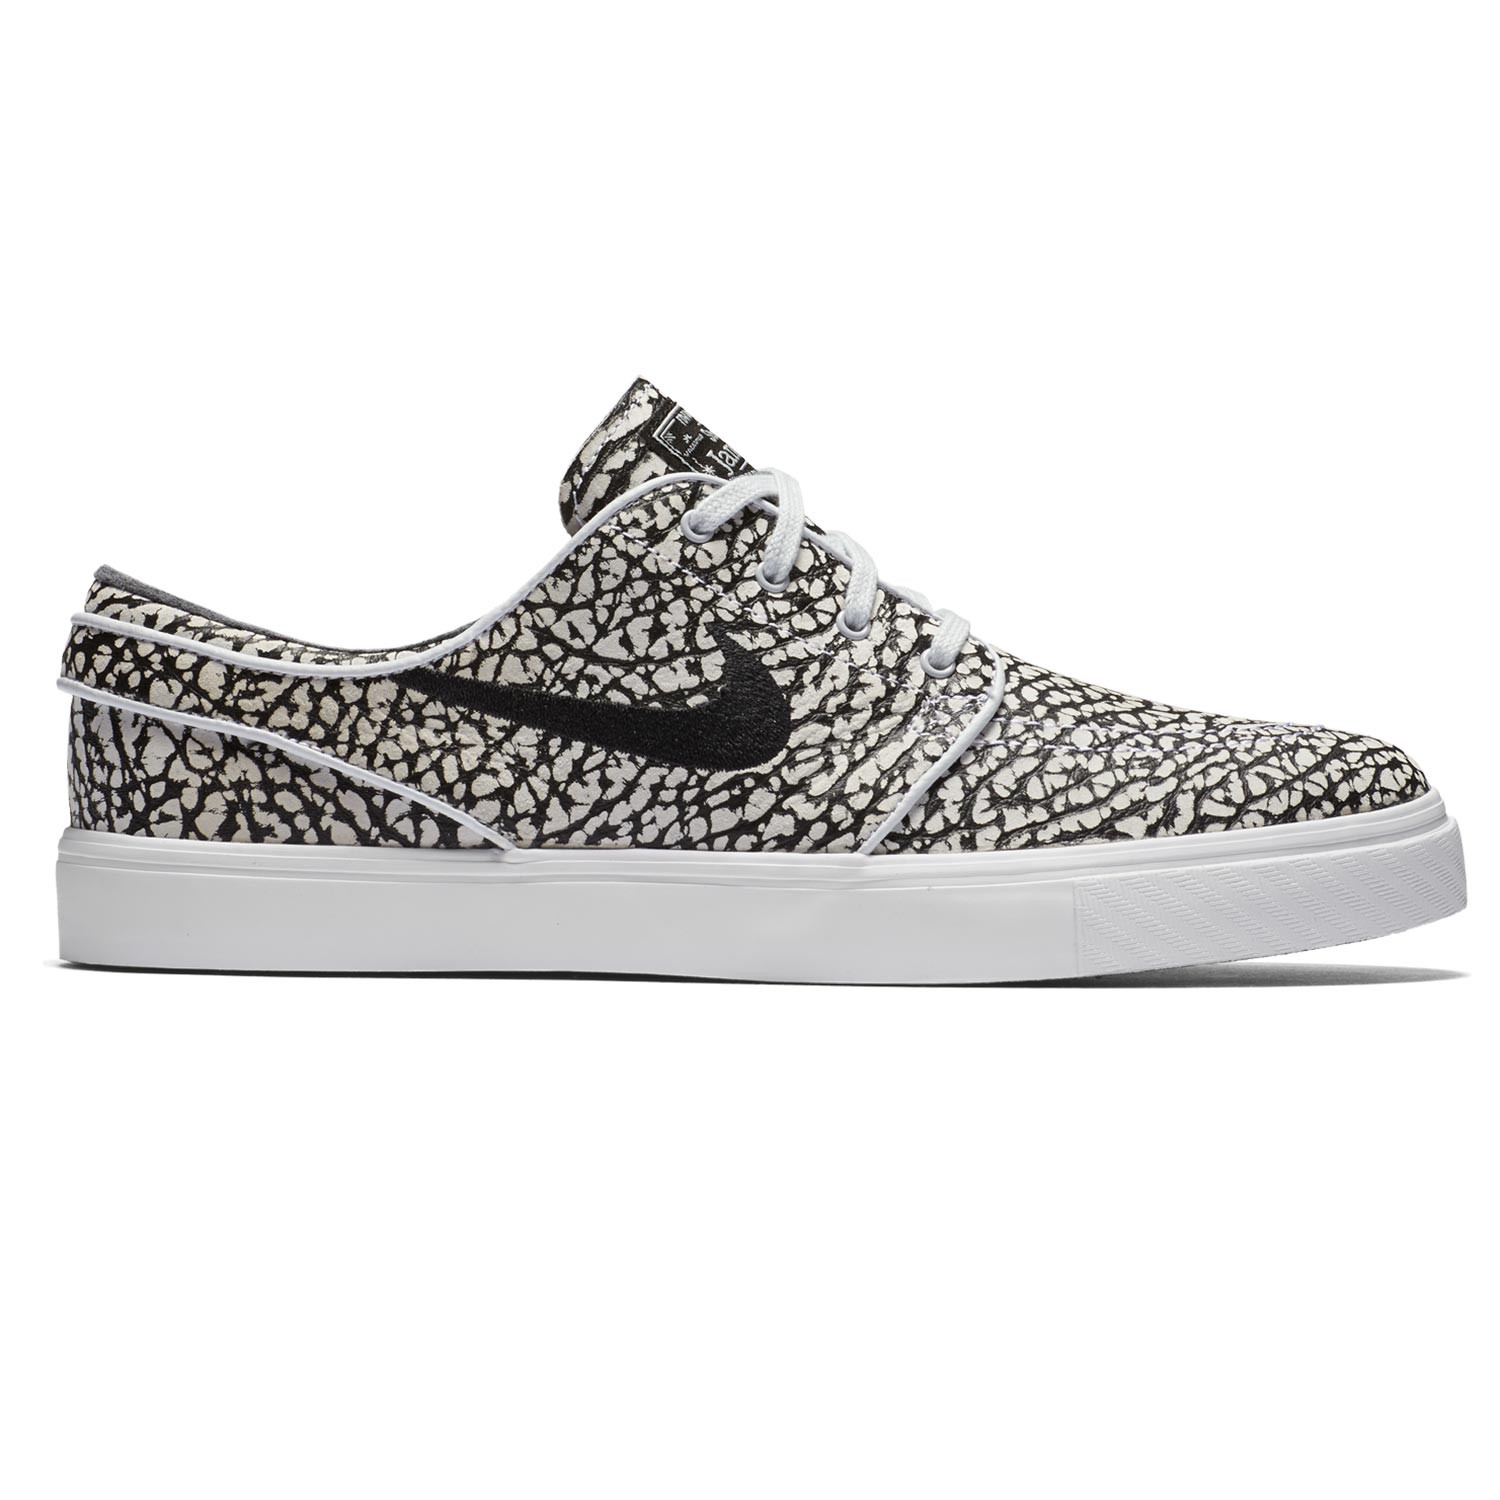 Tenisky Nike SB Air Zoom Stefan Janoski Elite pure platinum/black-wht